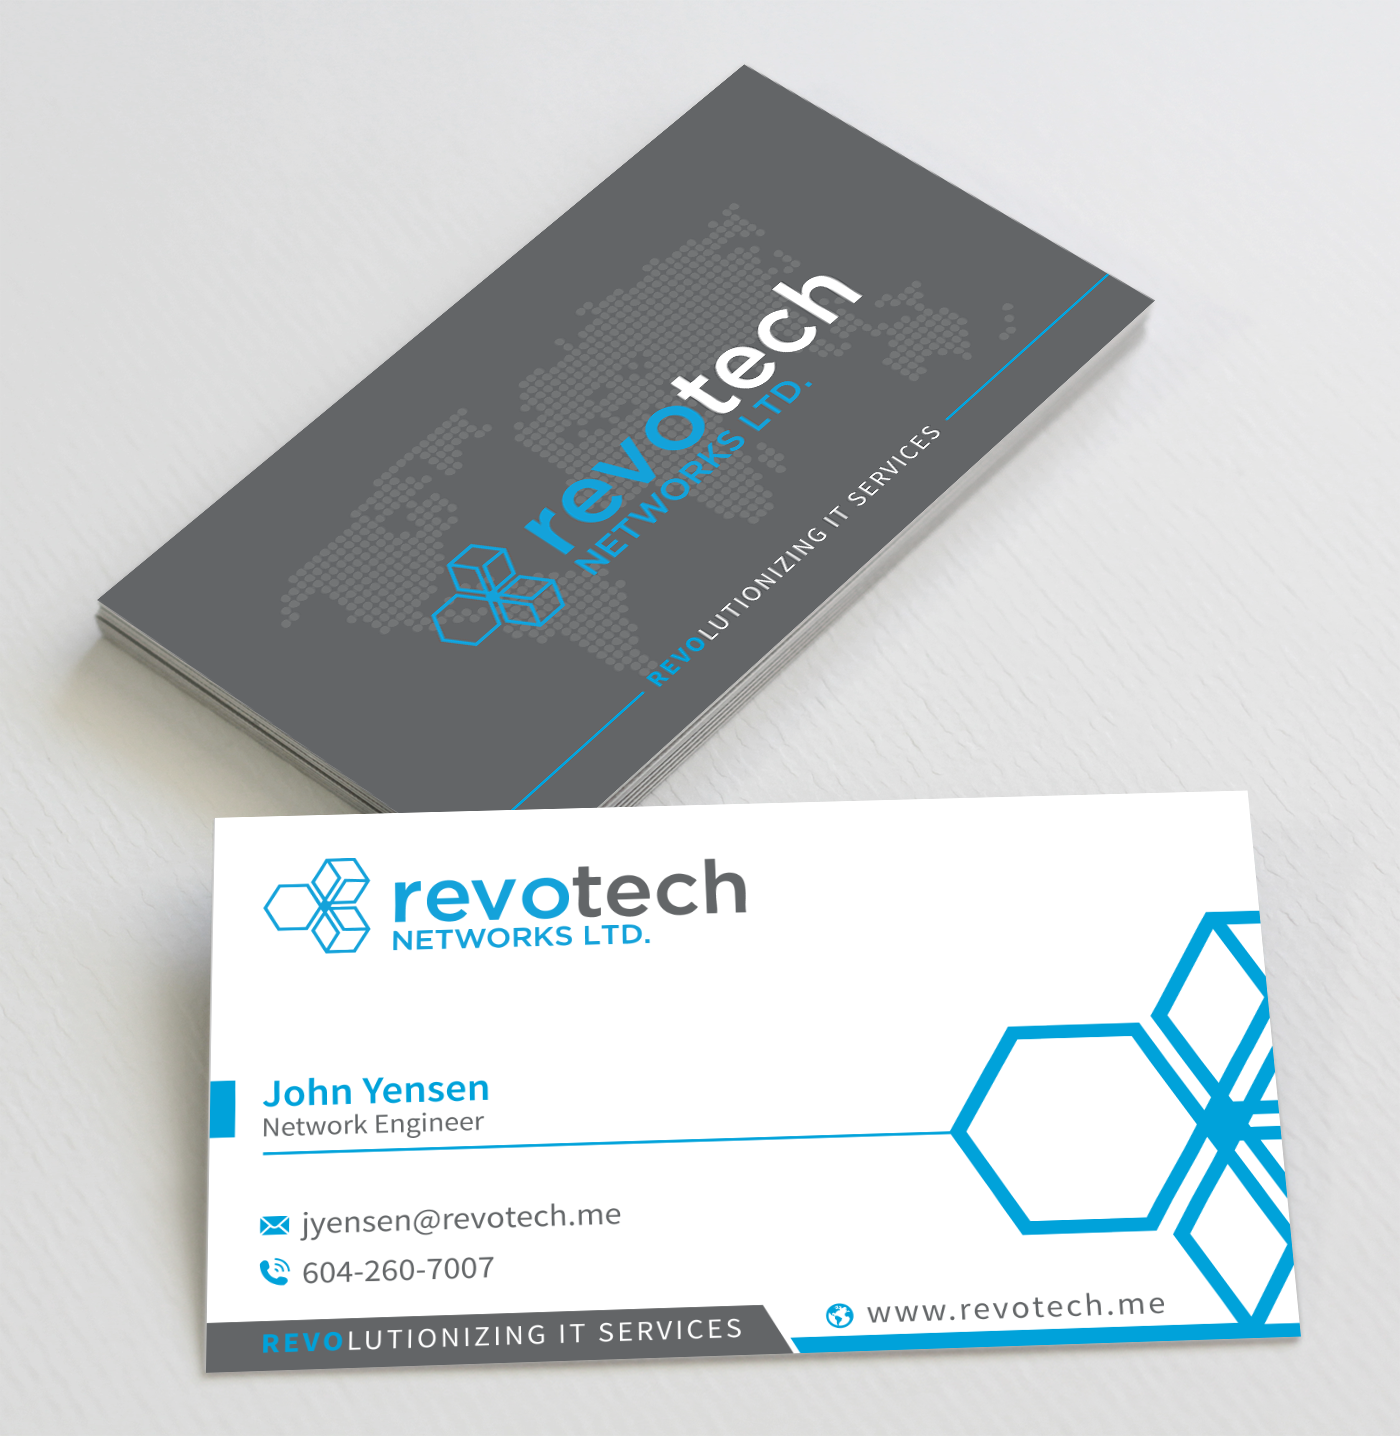 245 modern business card designs information technology business business card design by toyz86 for revotech networks ltd design 11013553 colourmoves